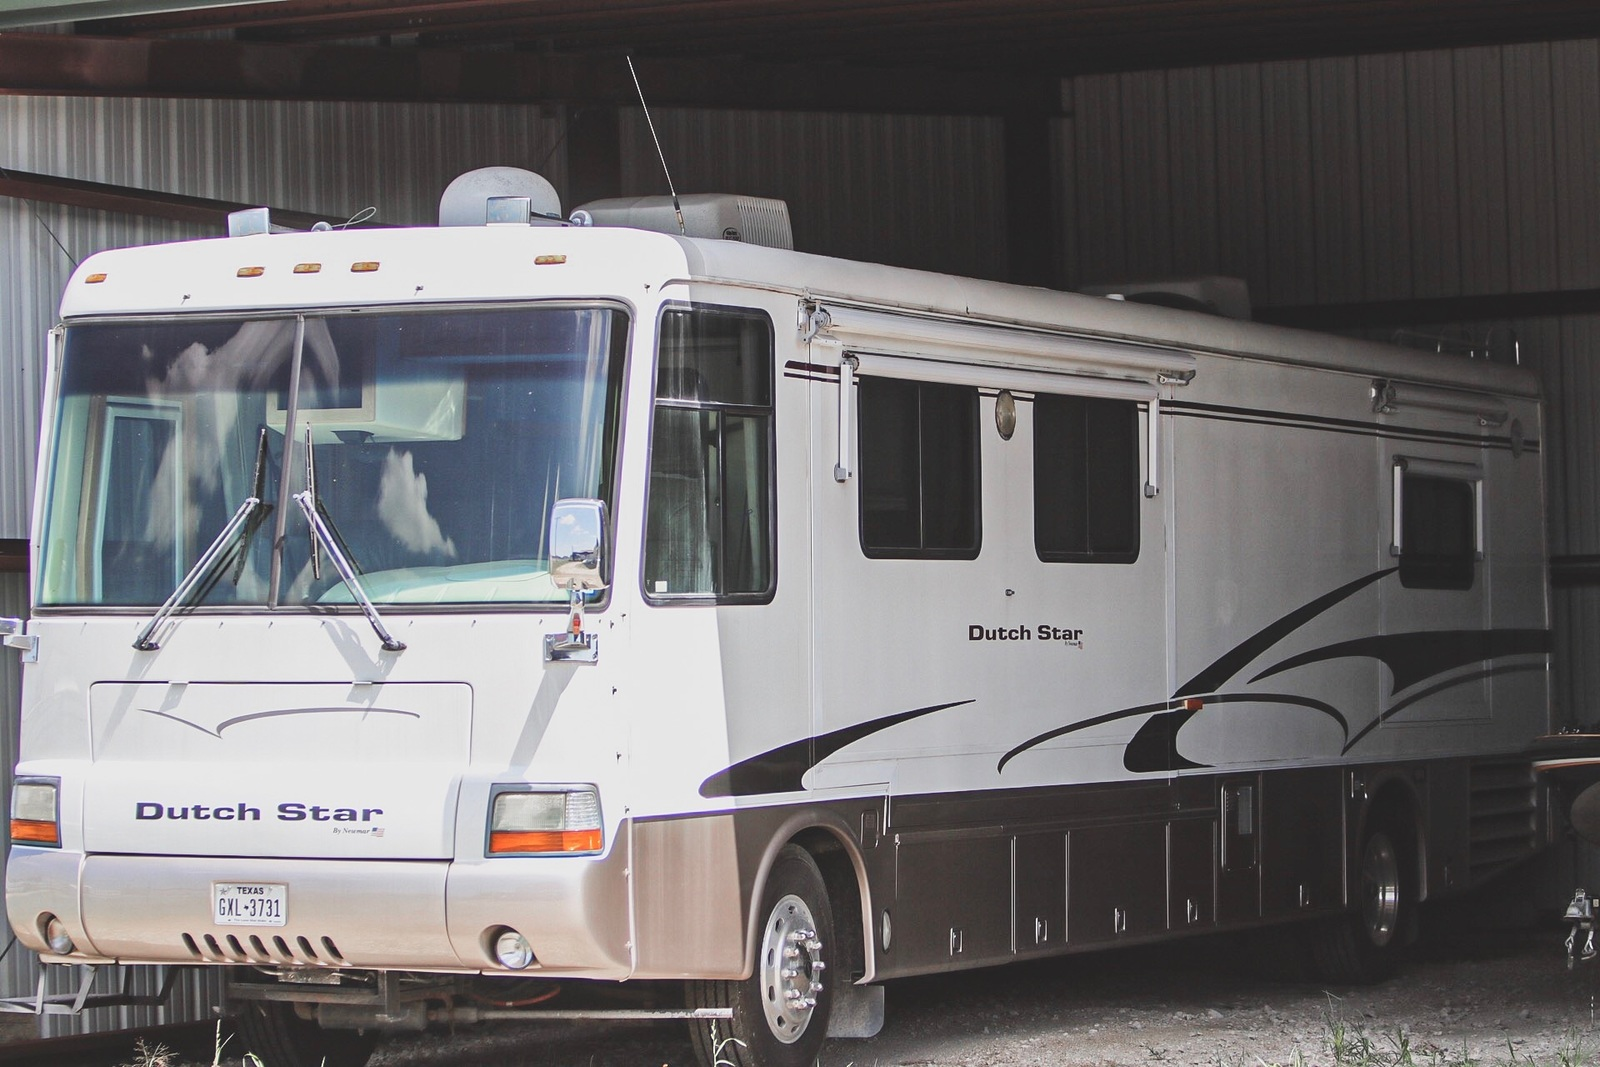 2001 Newmar Dutch Star 4095 For Sale In Palmer, TX 75152